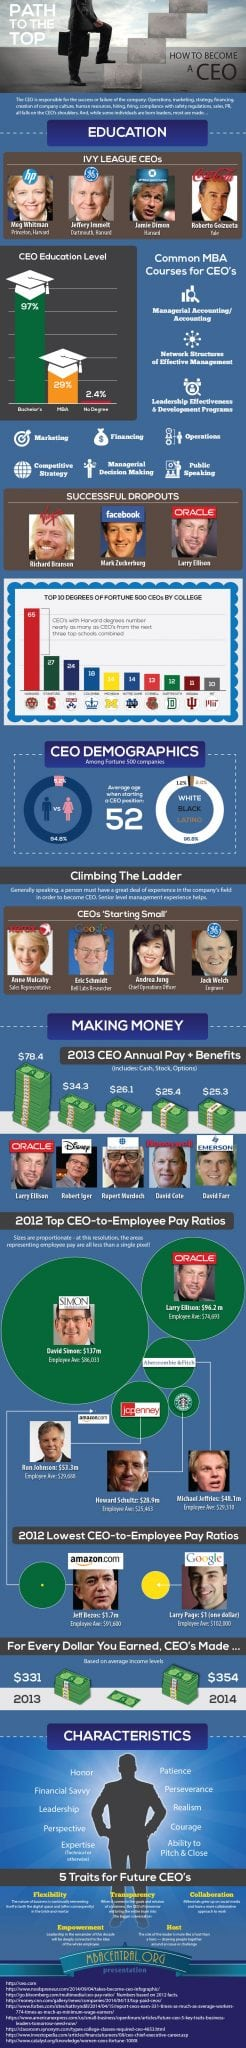 Photo of Path to the Top: How to Become a CEO